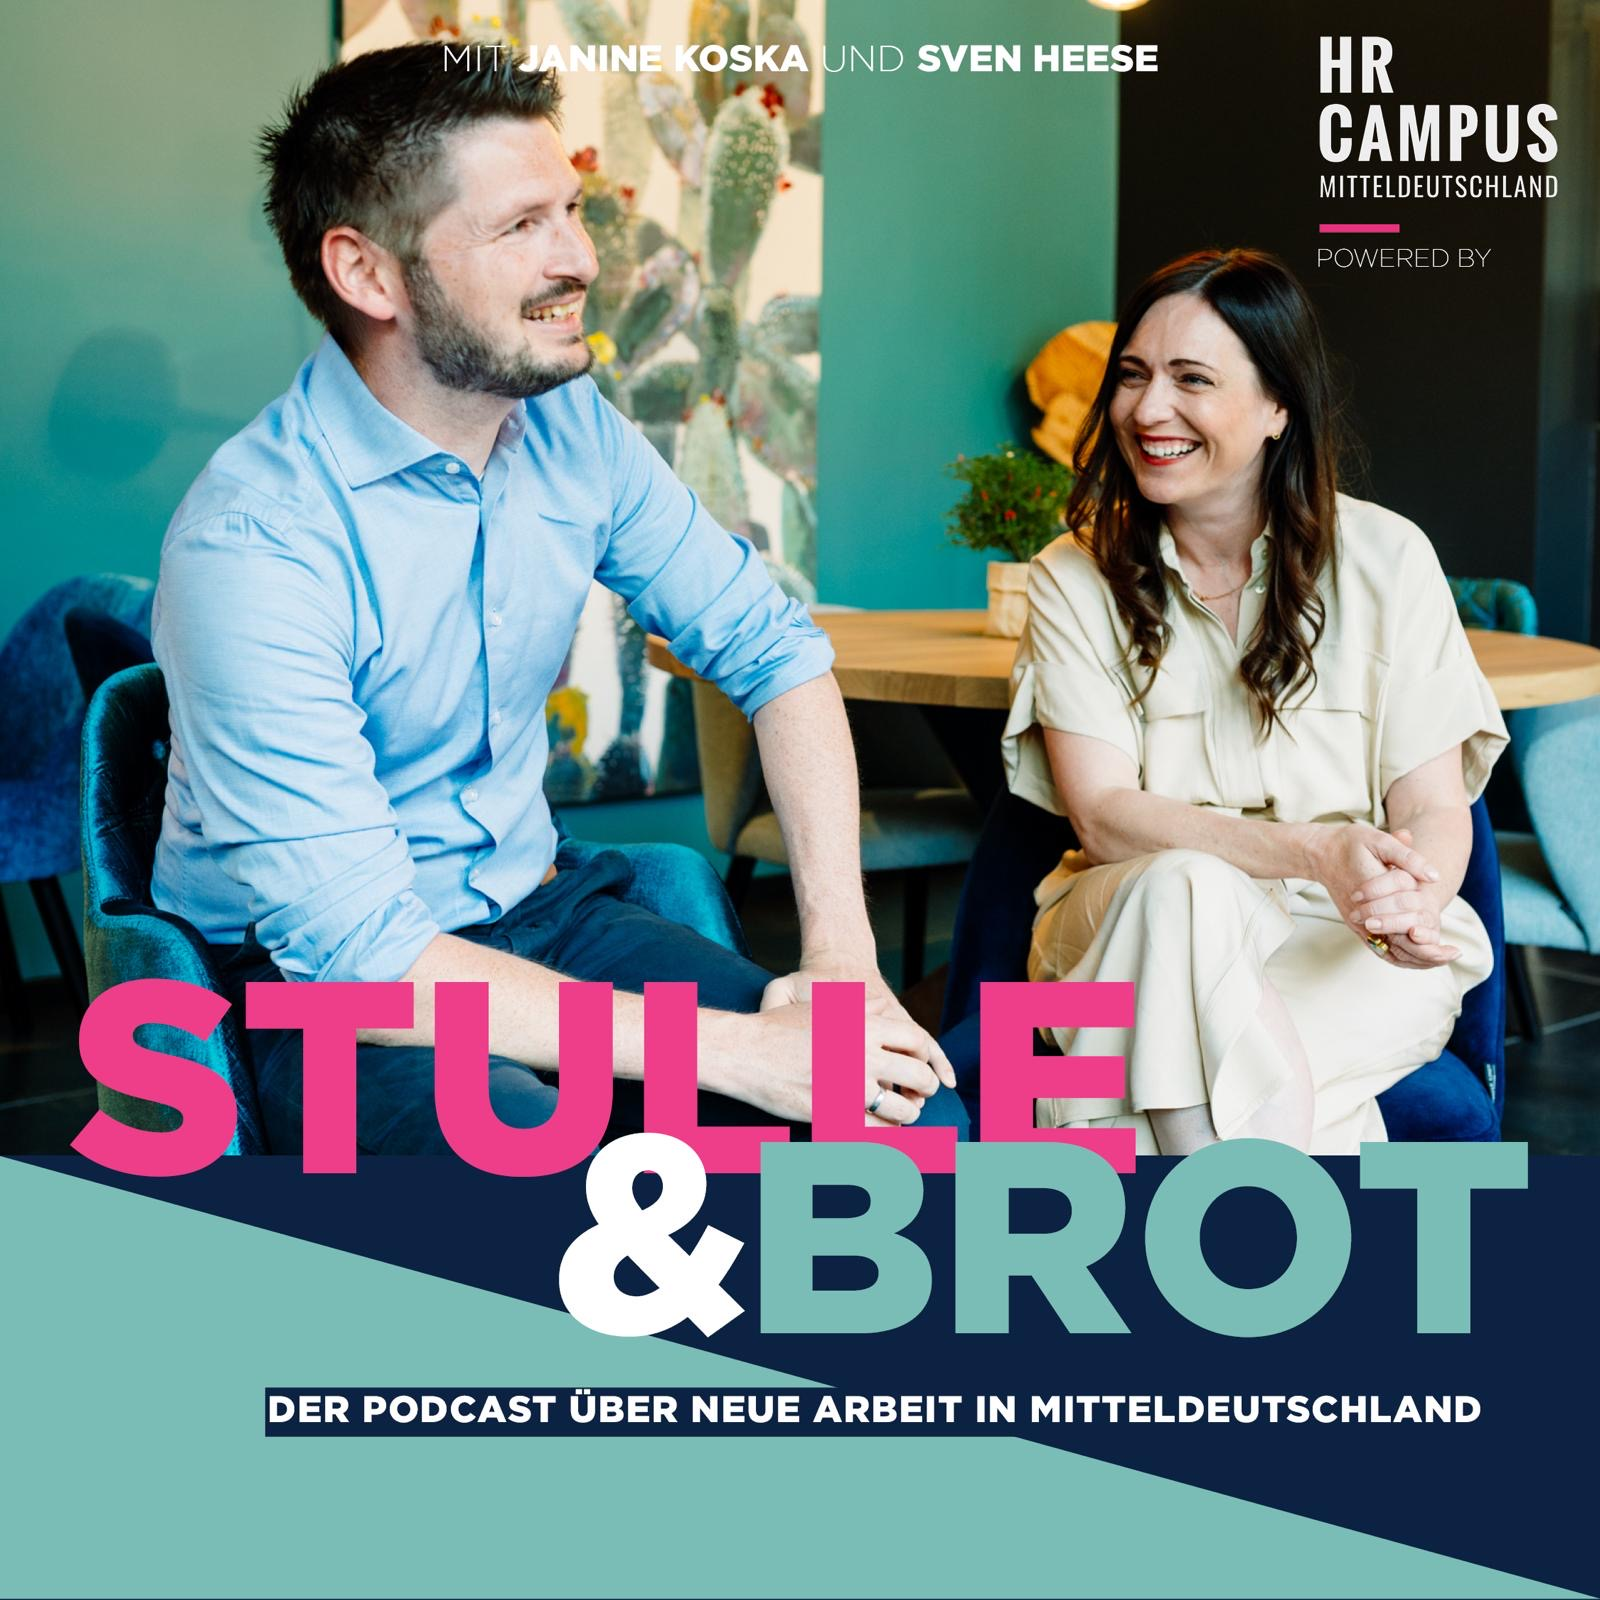 Podcast Stulle & Brot